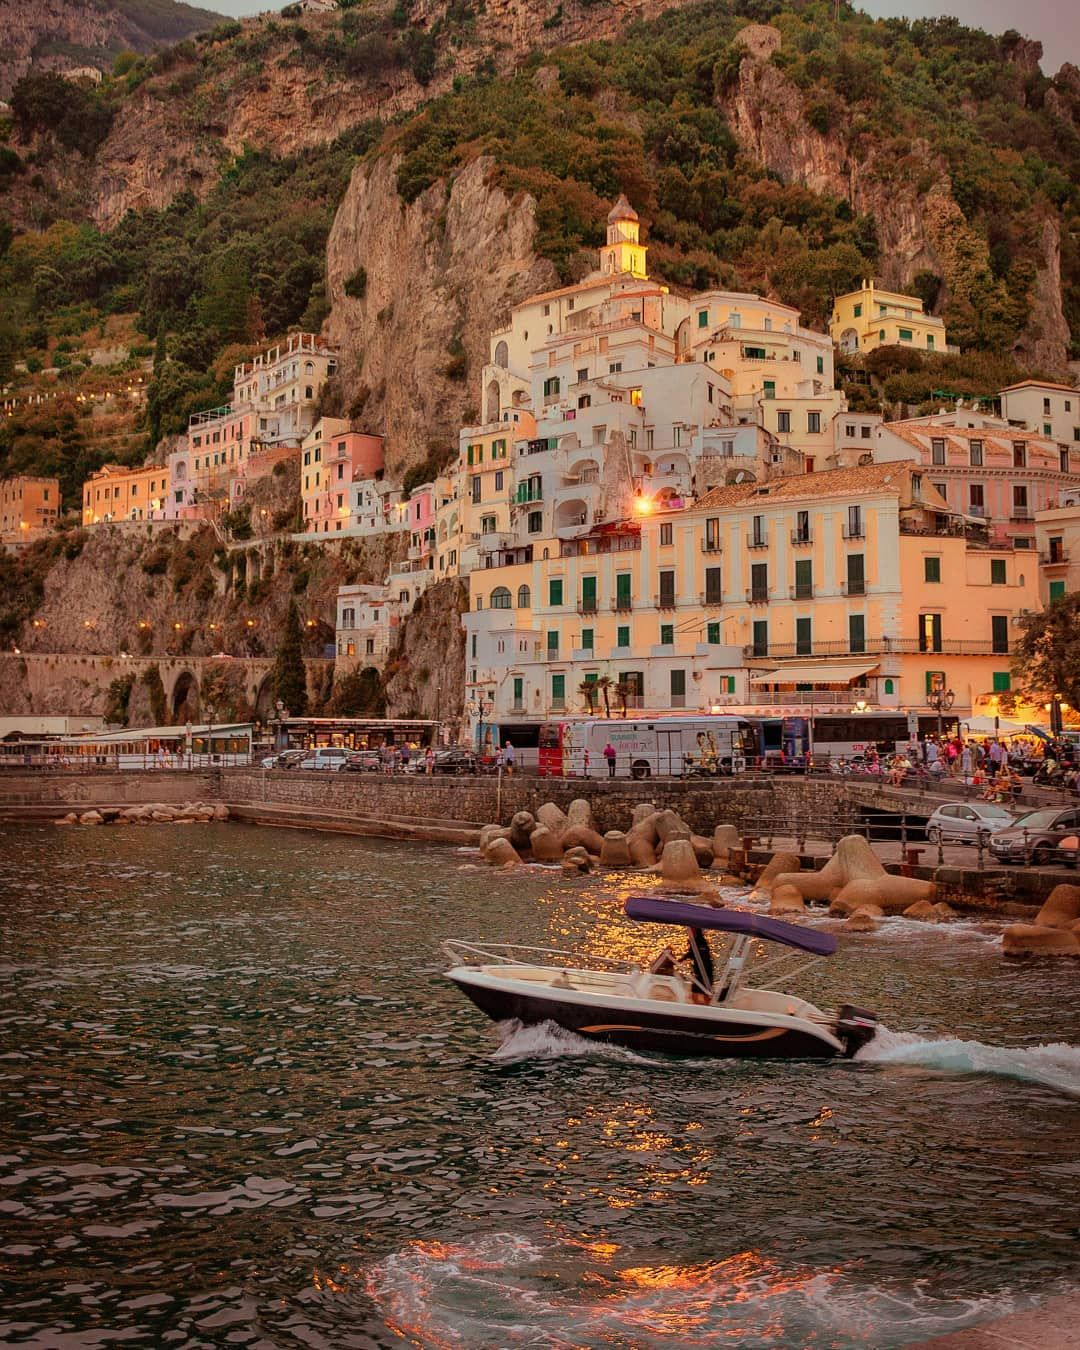 Amalfi, Italy #travelbugs